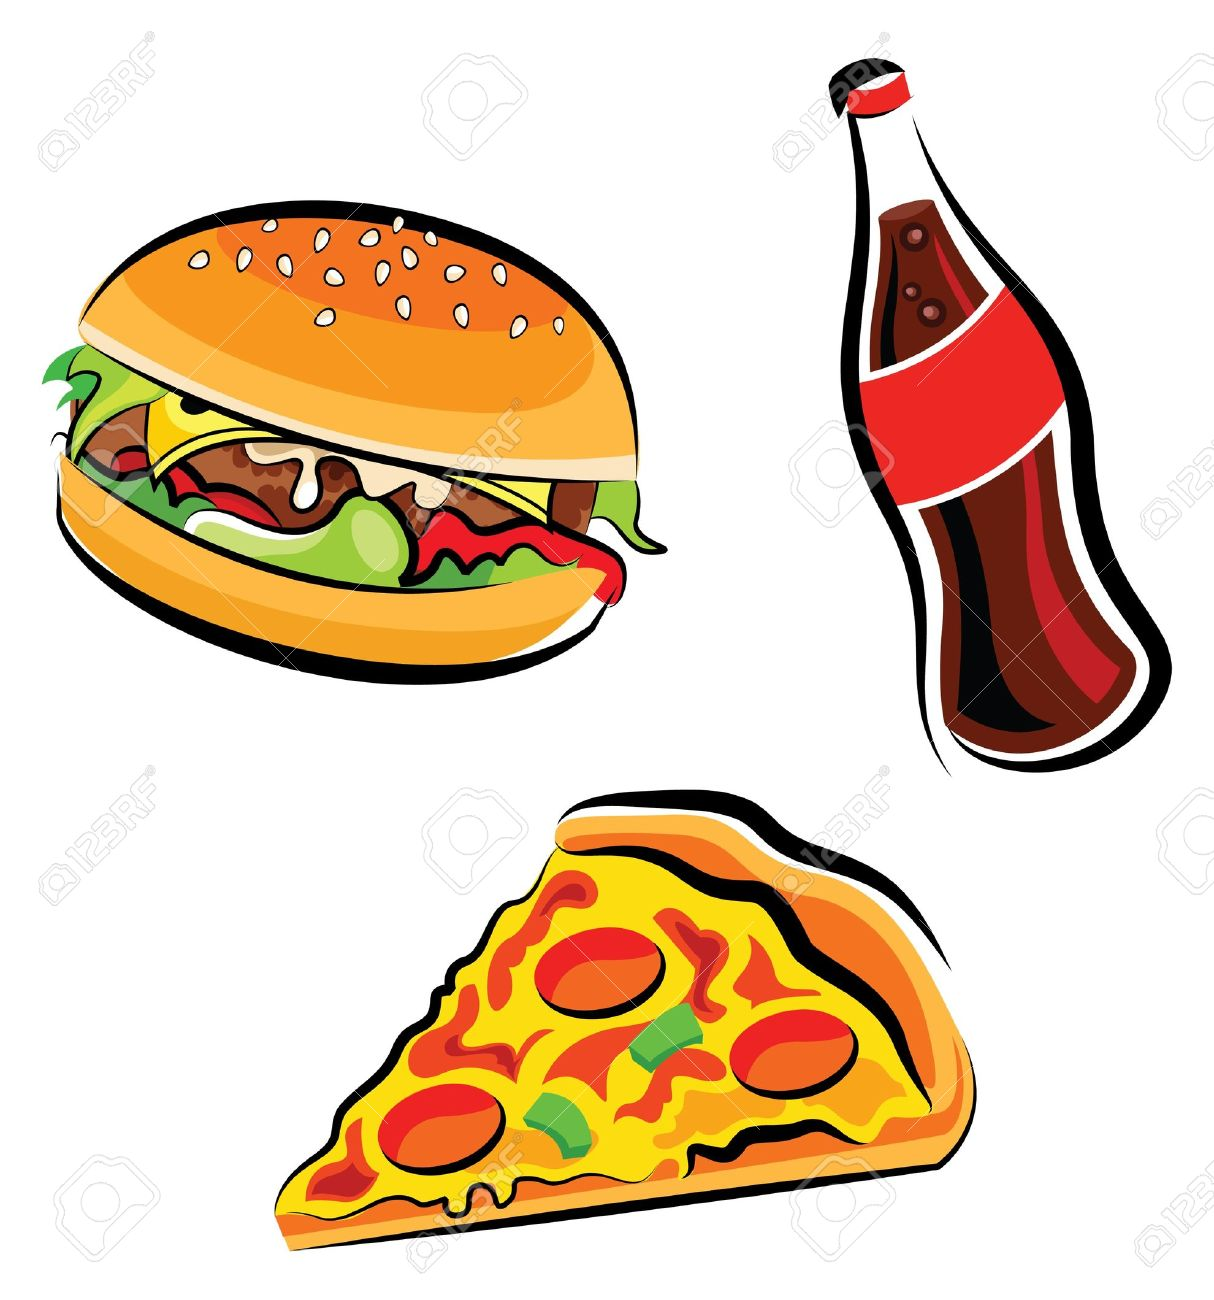 Hamburger clipart pizza. Collection of free download